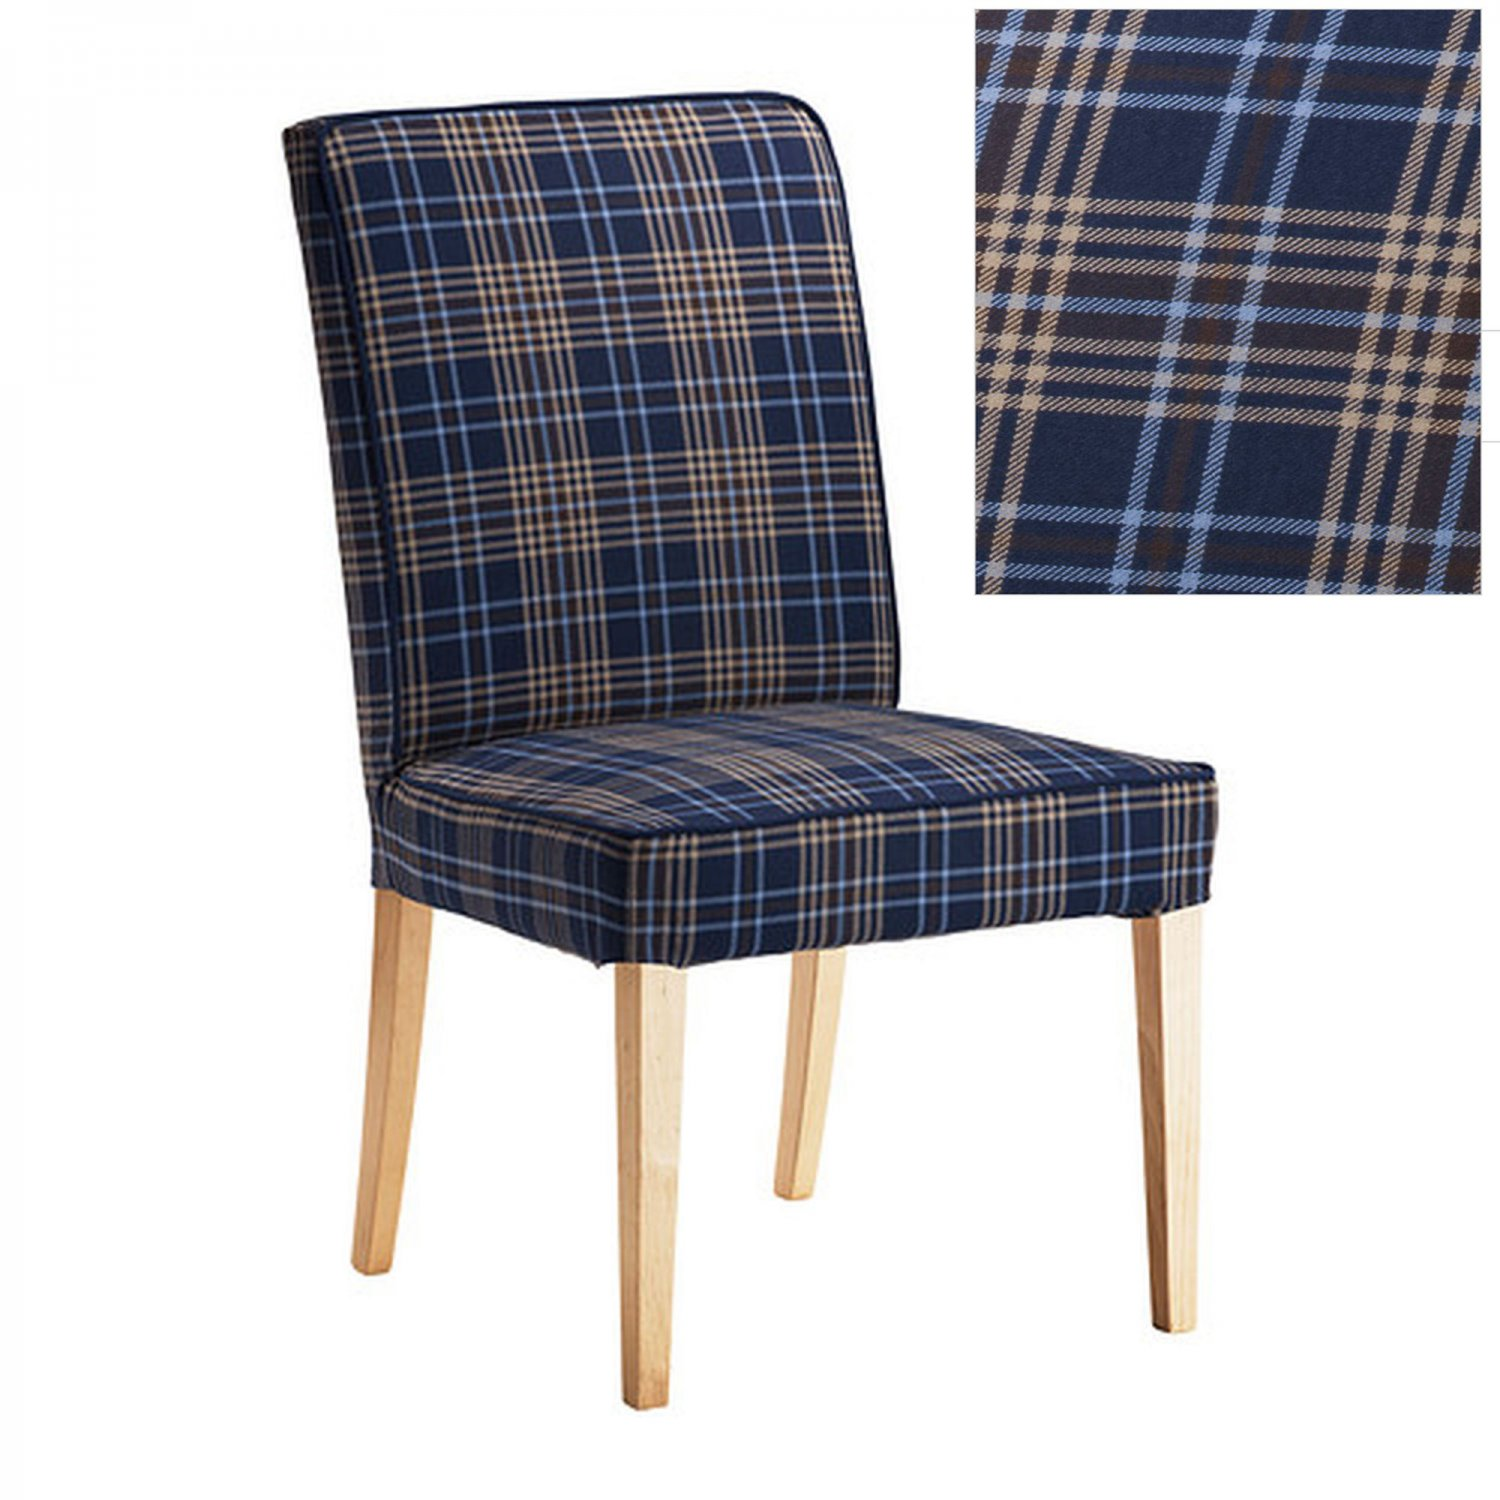 ikea henriksdal rutna multicolor blue plaid chair slipcover cover 21 54cm. Black Bedroom Furniture Sets. Home Design Ideas